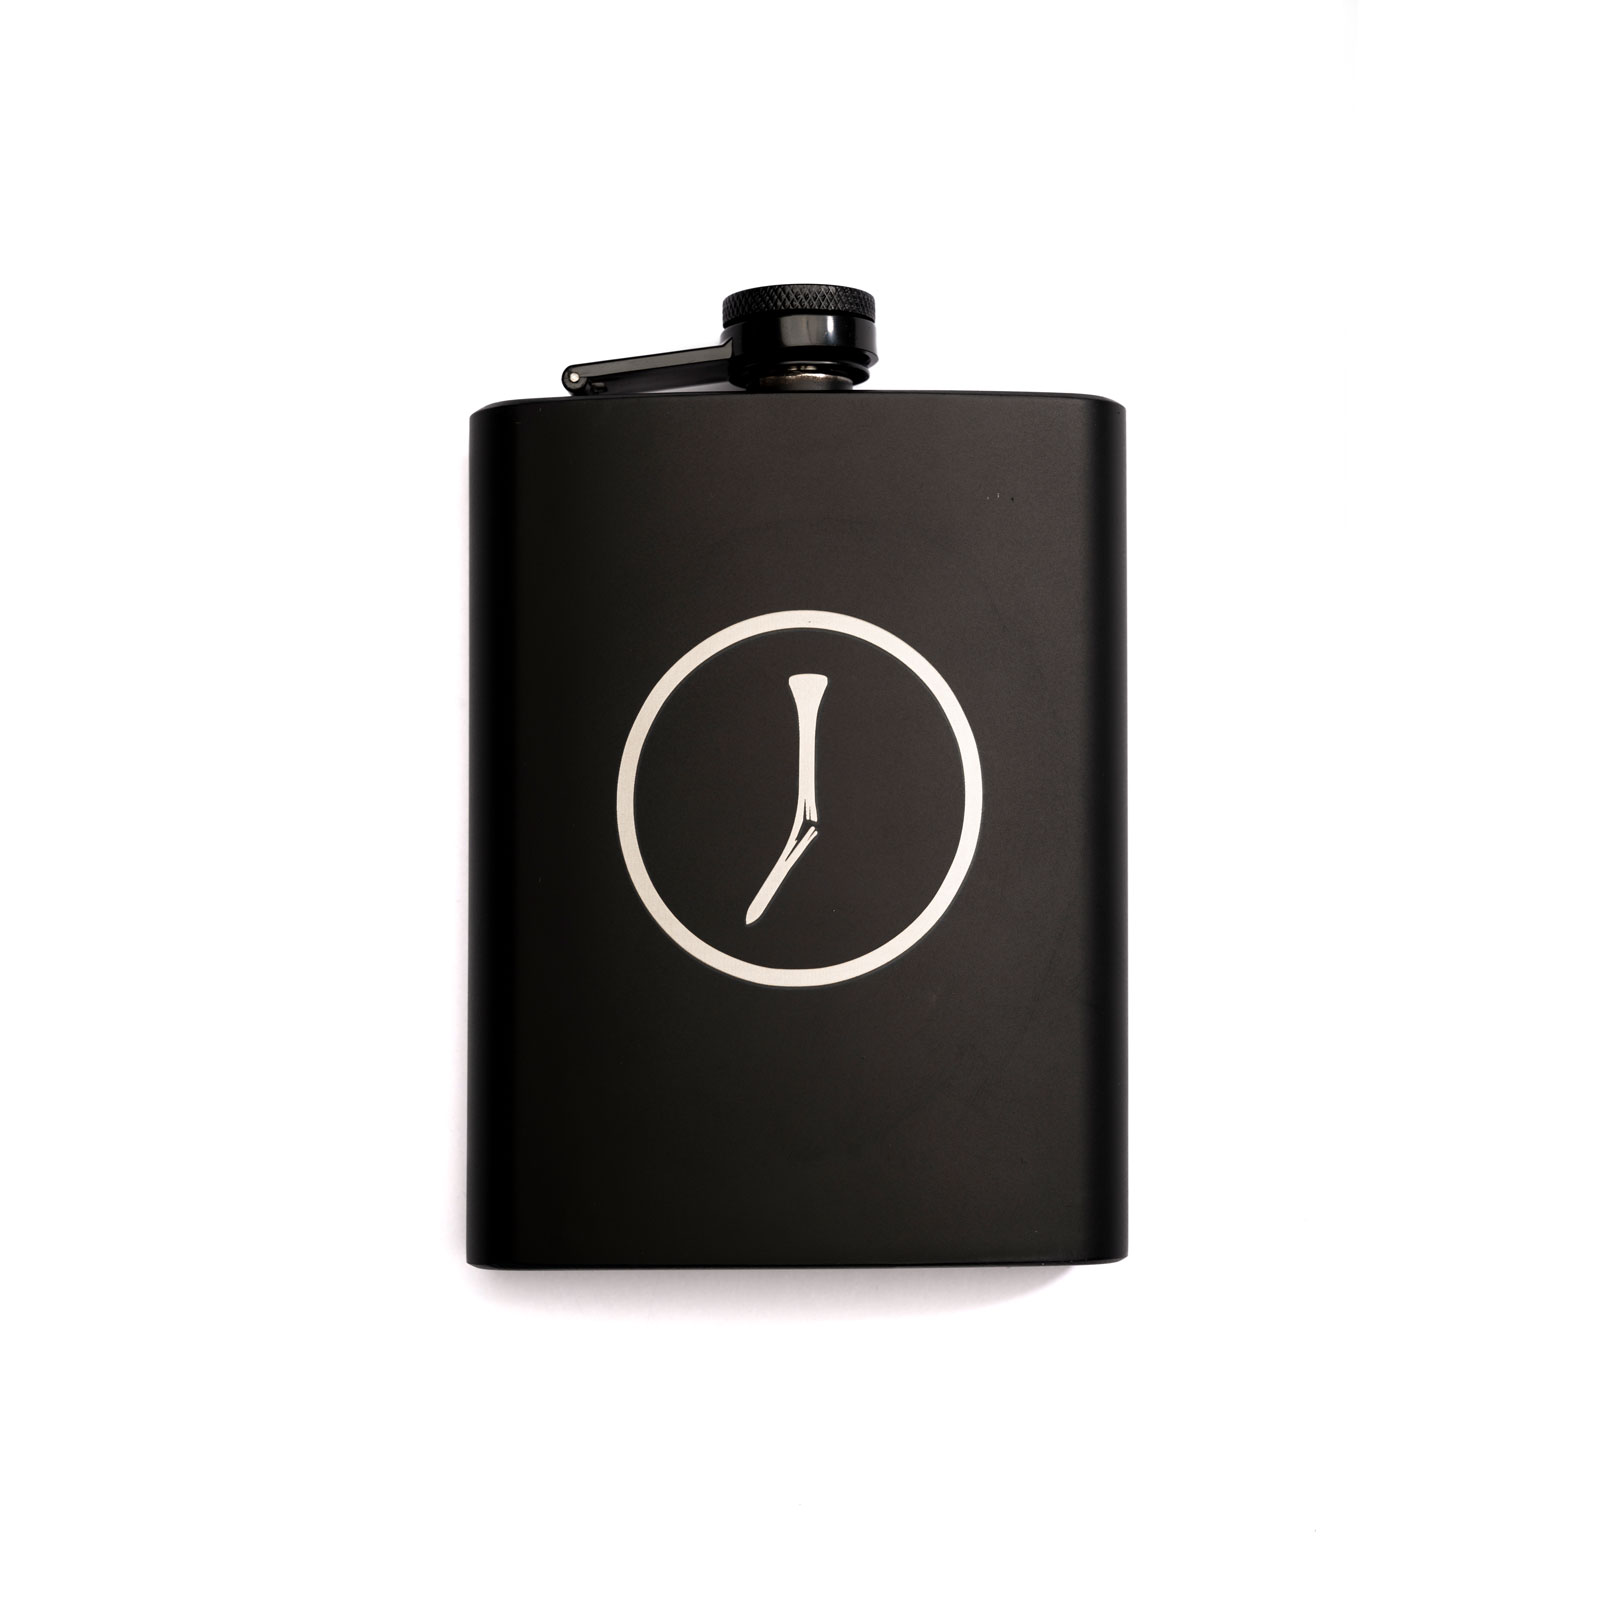 The Hip Flask